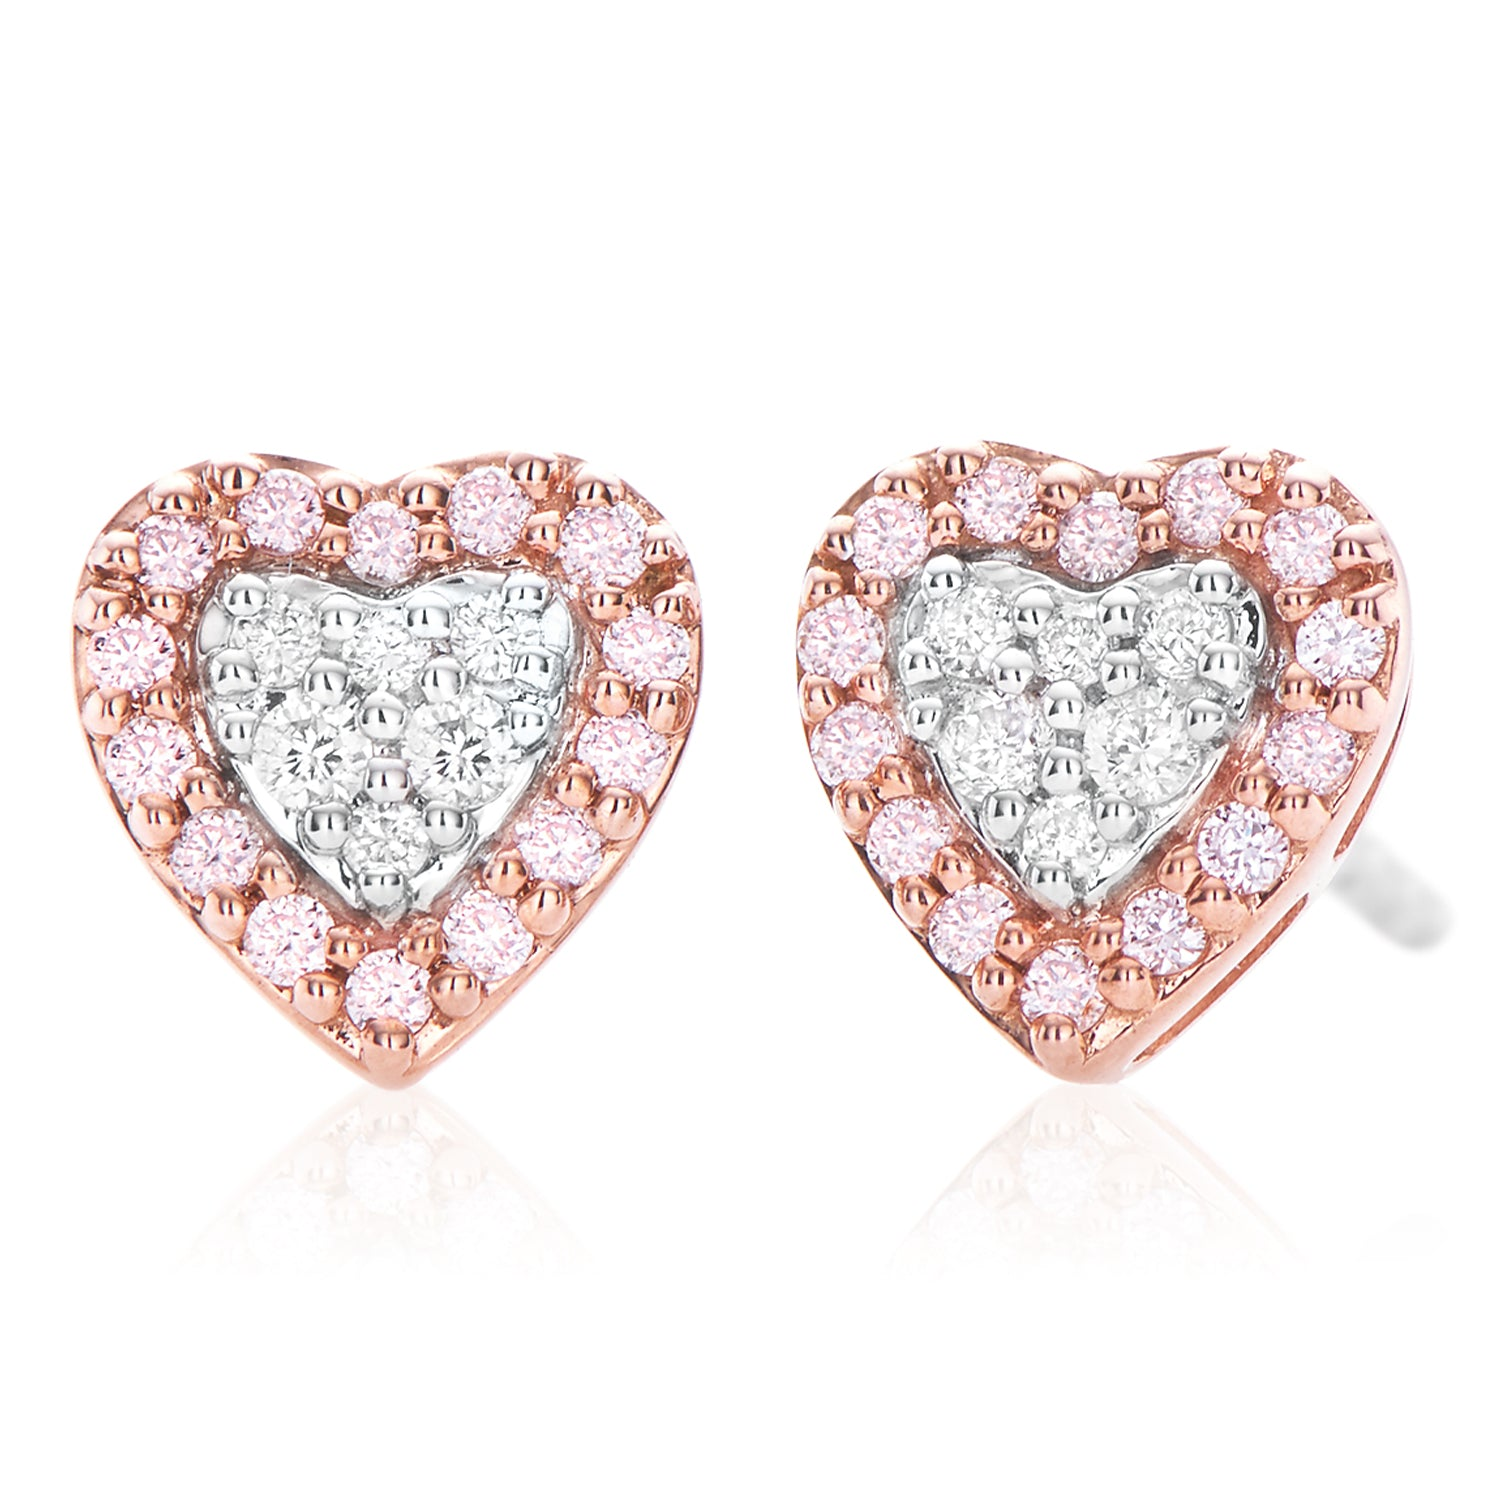 Pink Diamonds 9ct Rose & White Gold Round Brilliant Cut with 0.17 CARAT tw of Diamonds